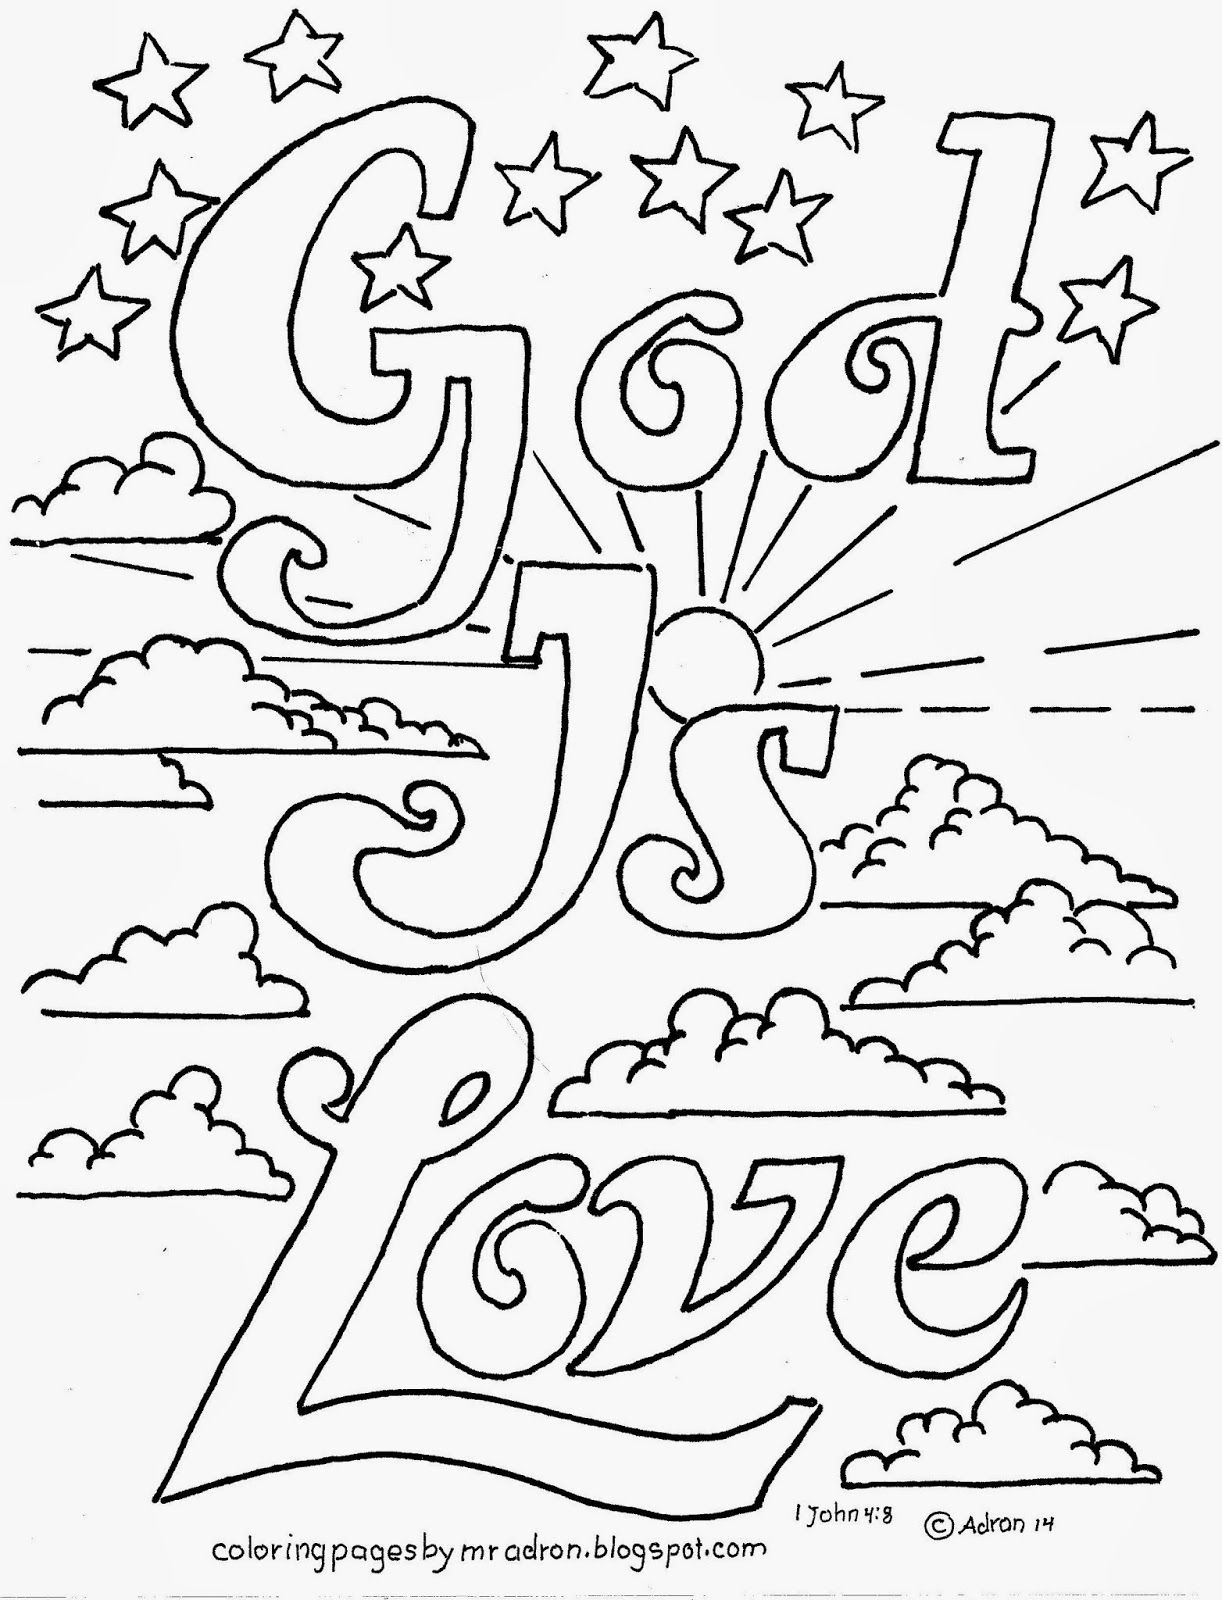 God Is Love Printable, Free Kid's Coloring Page. 1 John 4